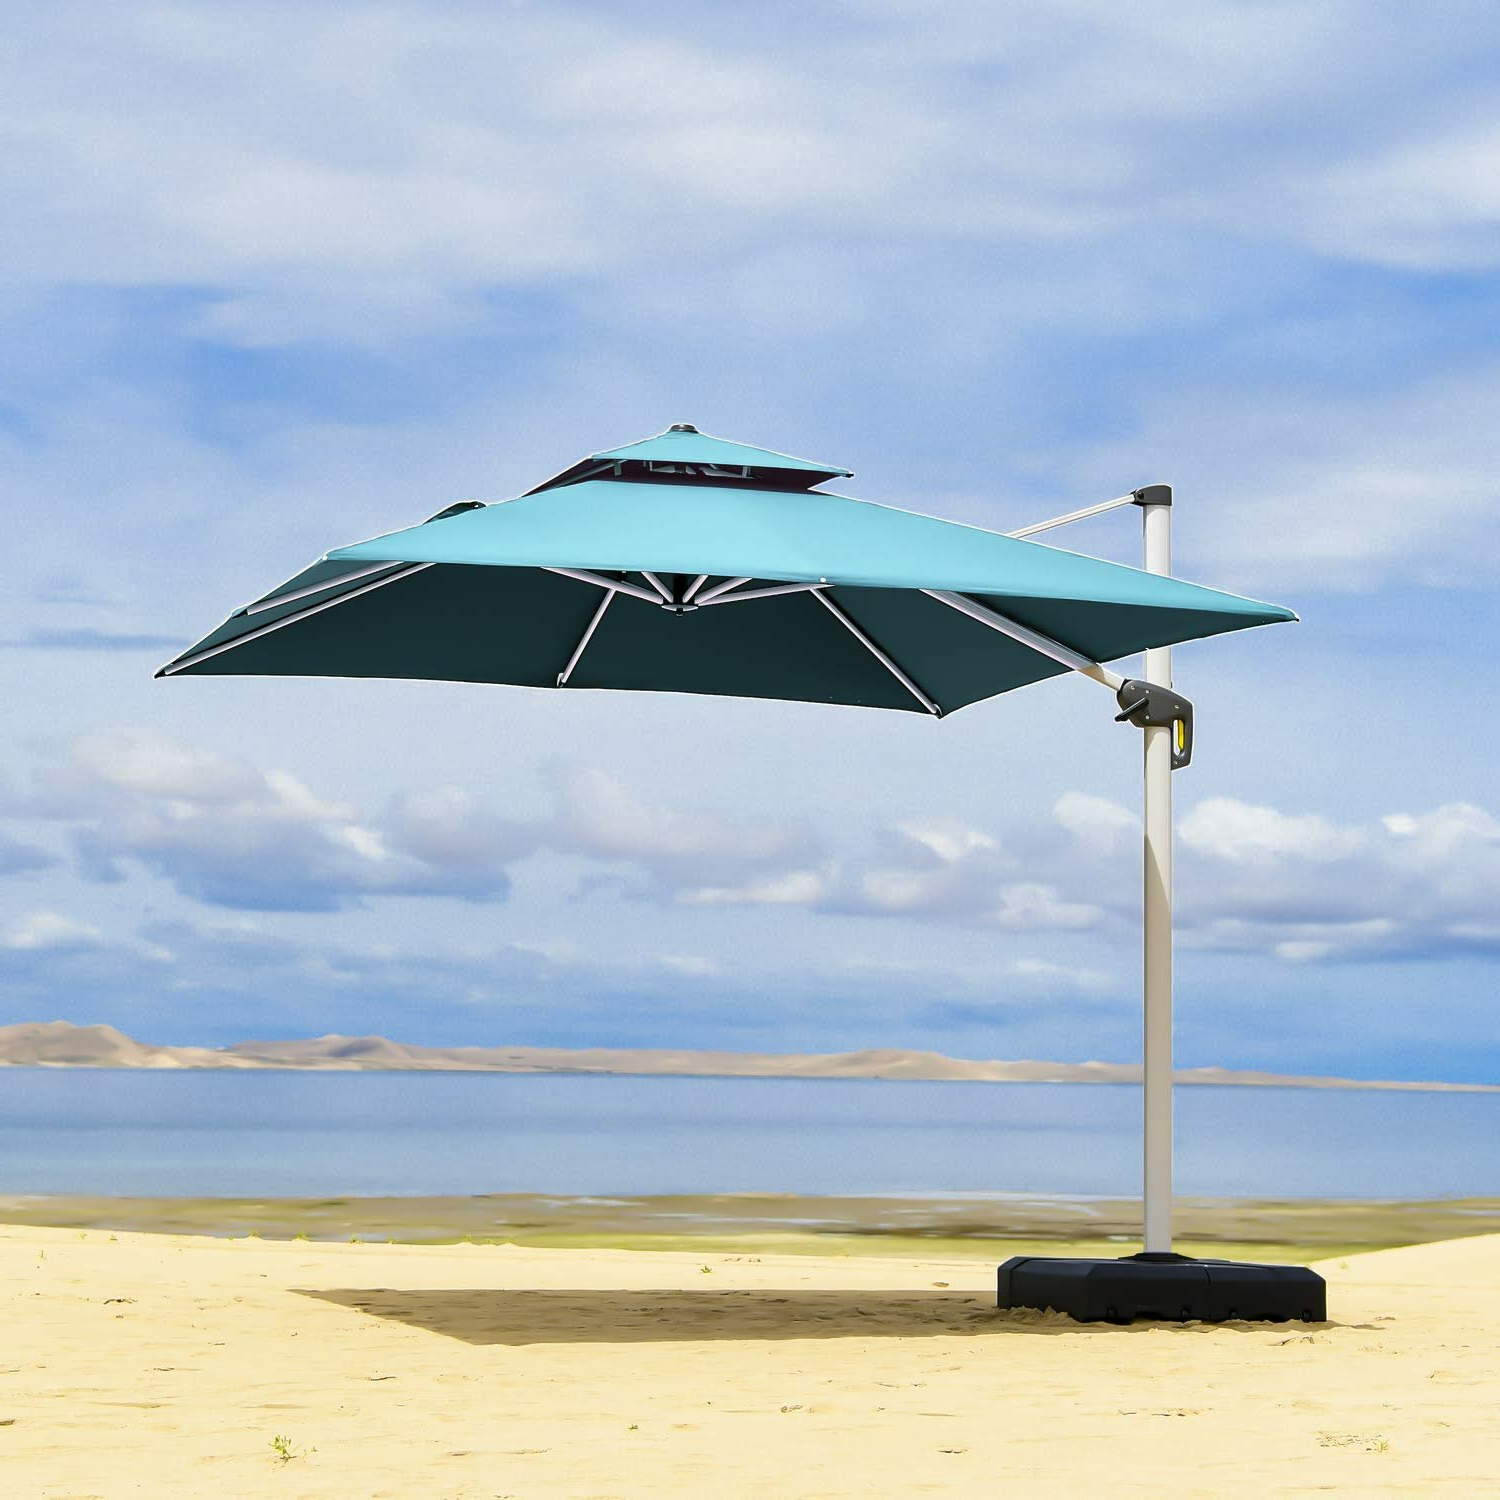 2019 Freeport Park Maidste 9' Square Cantilever Umbrella Intended For Maidste Square Cantilever Umbrellas (View 8 of 20)